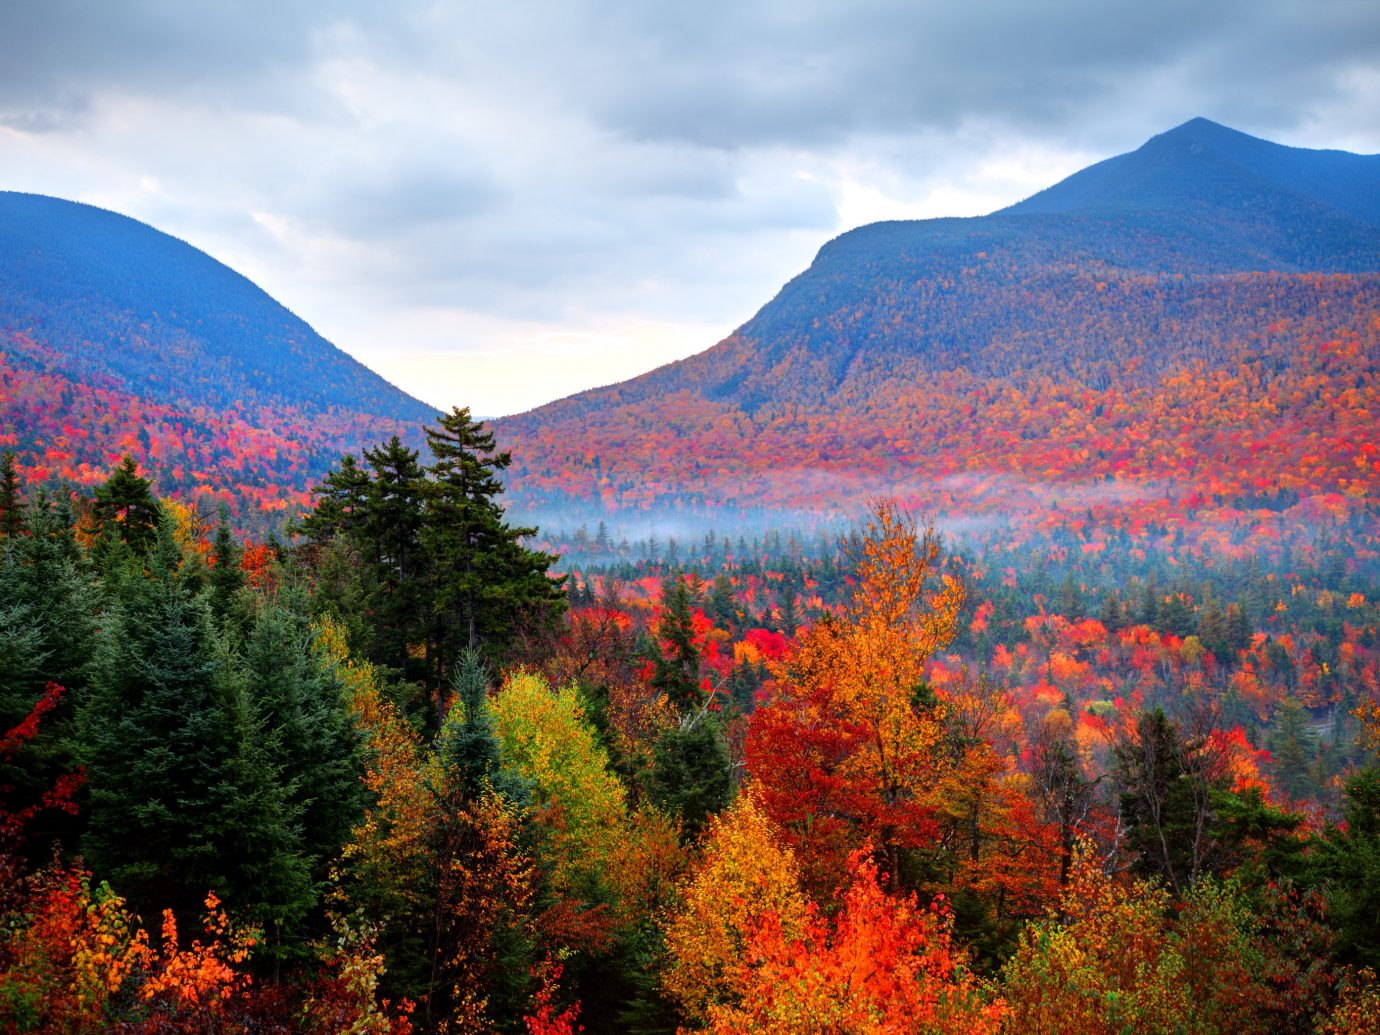 Trip Ideas sky mountain tree outdoor mountainous landforms Nature wilderness geographical feature atmospheric phenomenon ecosystem autumn leaf season background plant Forest woody plant landscape flower valley meadow mountain range ridge sunrise woodland lush highland distance